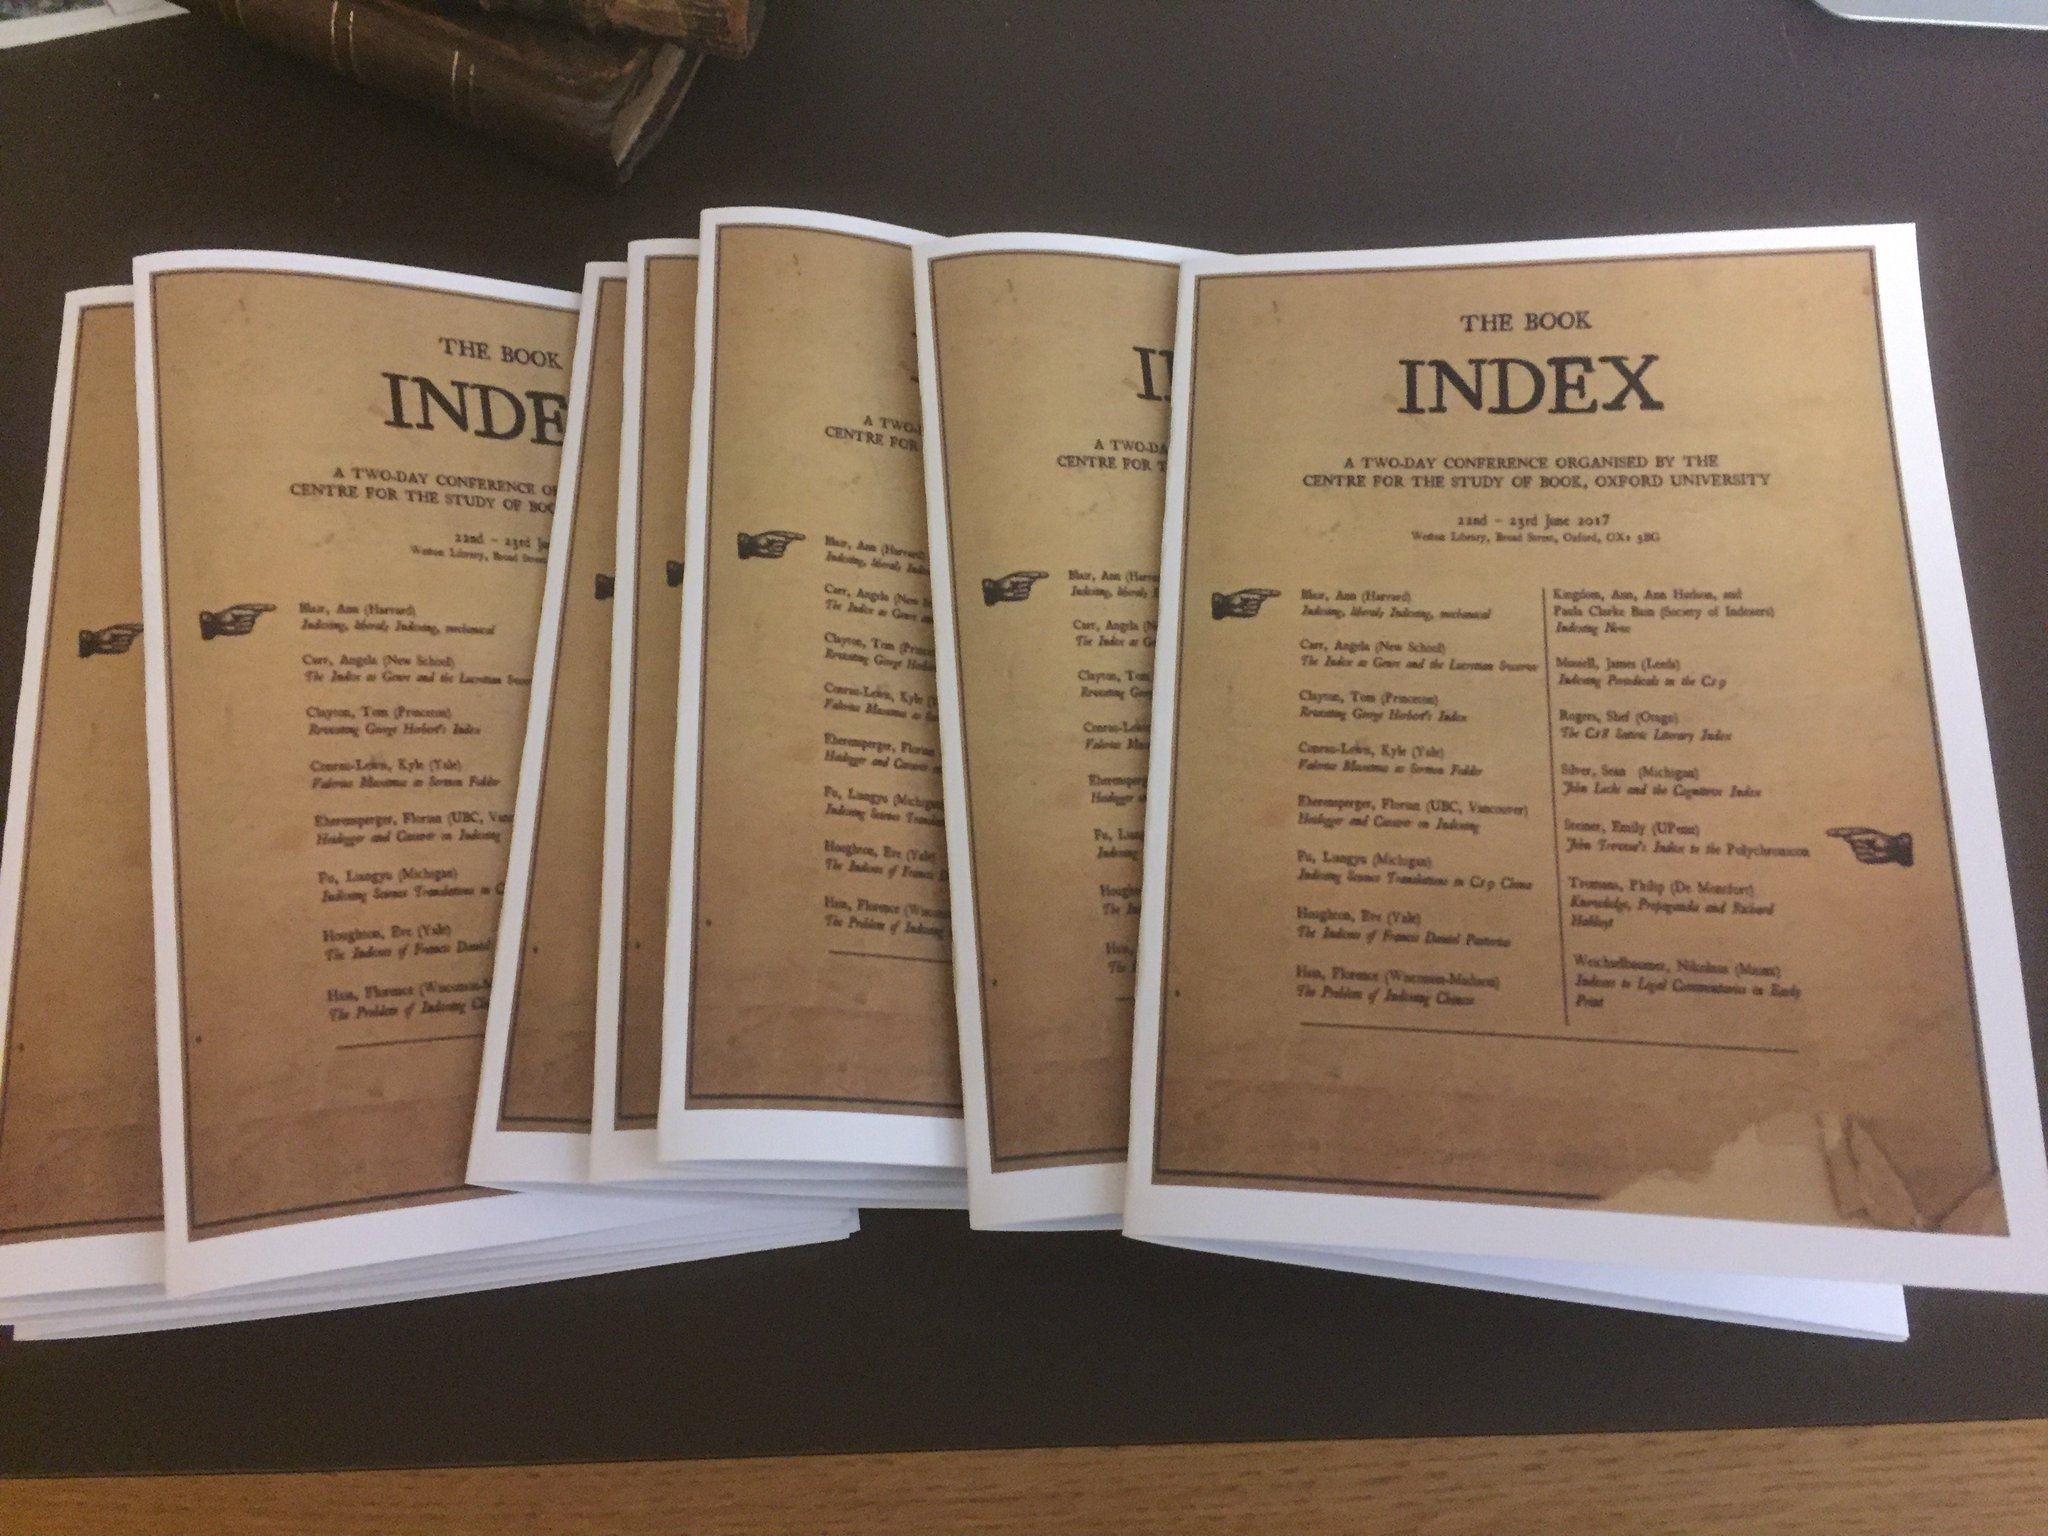 One week to go... The programmes have arrived! https://t.co/Cqp9bUSMes @bodleiancsb #bookindex17 https://t.co/A9U63INQDW